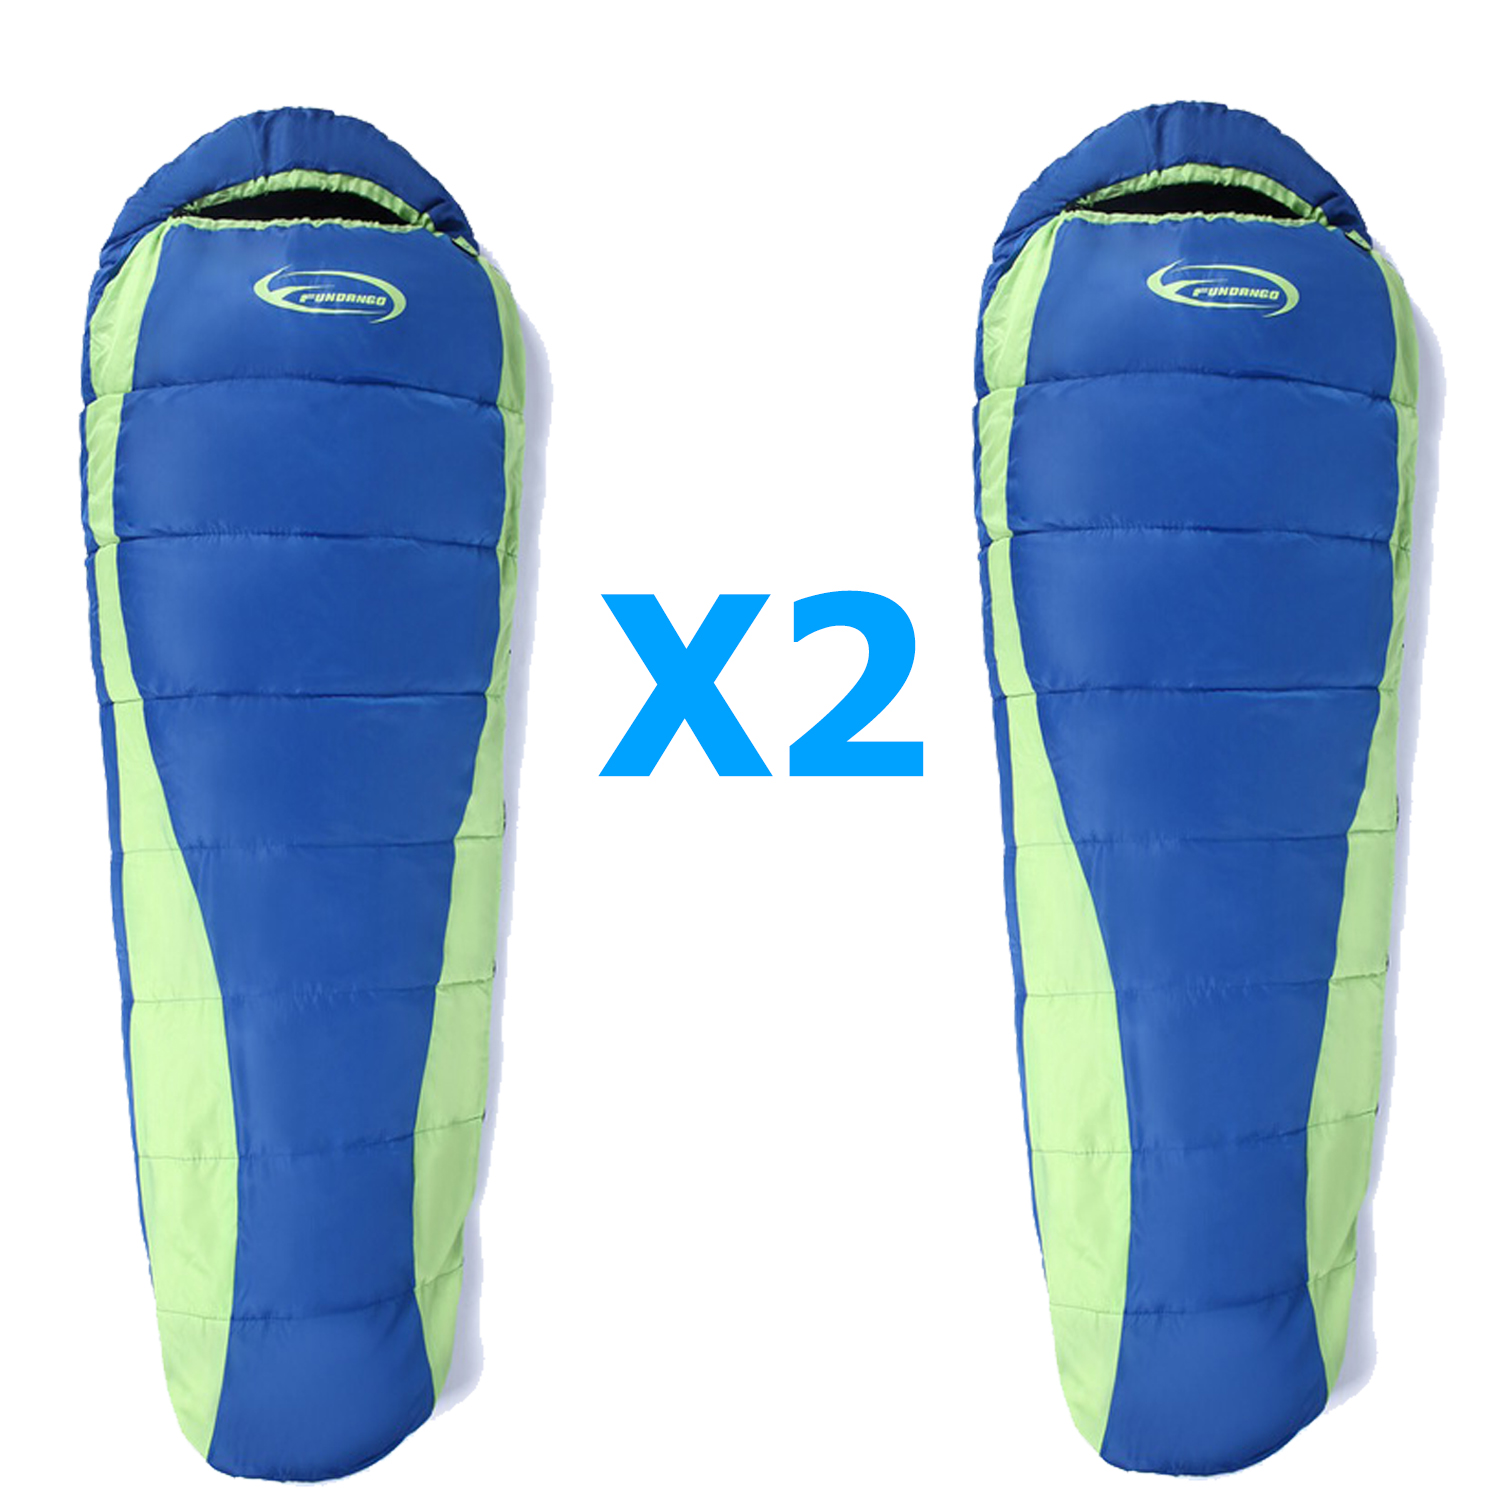 Target Sleeping Bags 2 Person Tent 2x Mummy Sleeping Bags 3day Zombie Survival